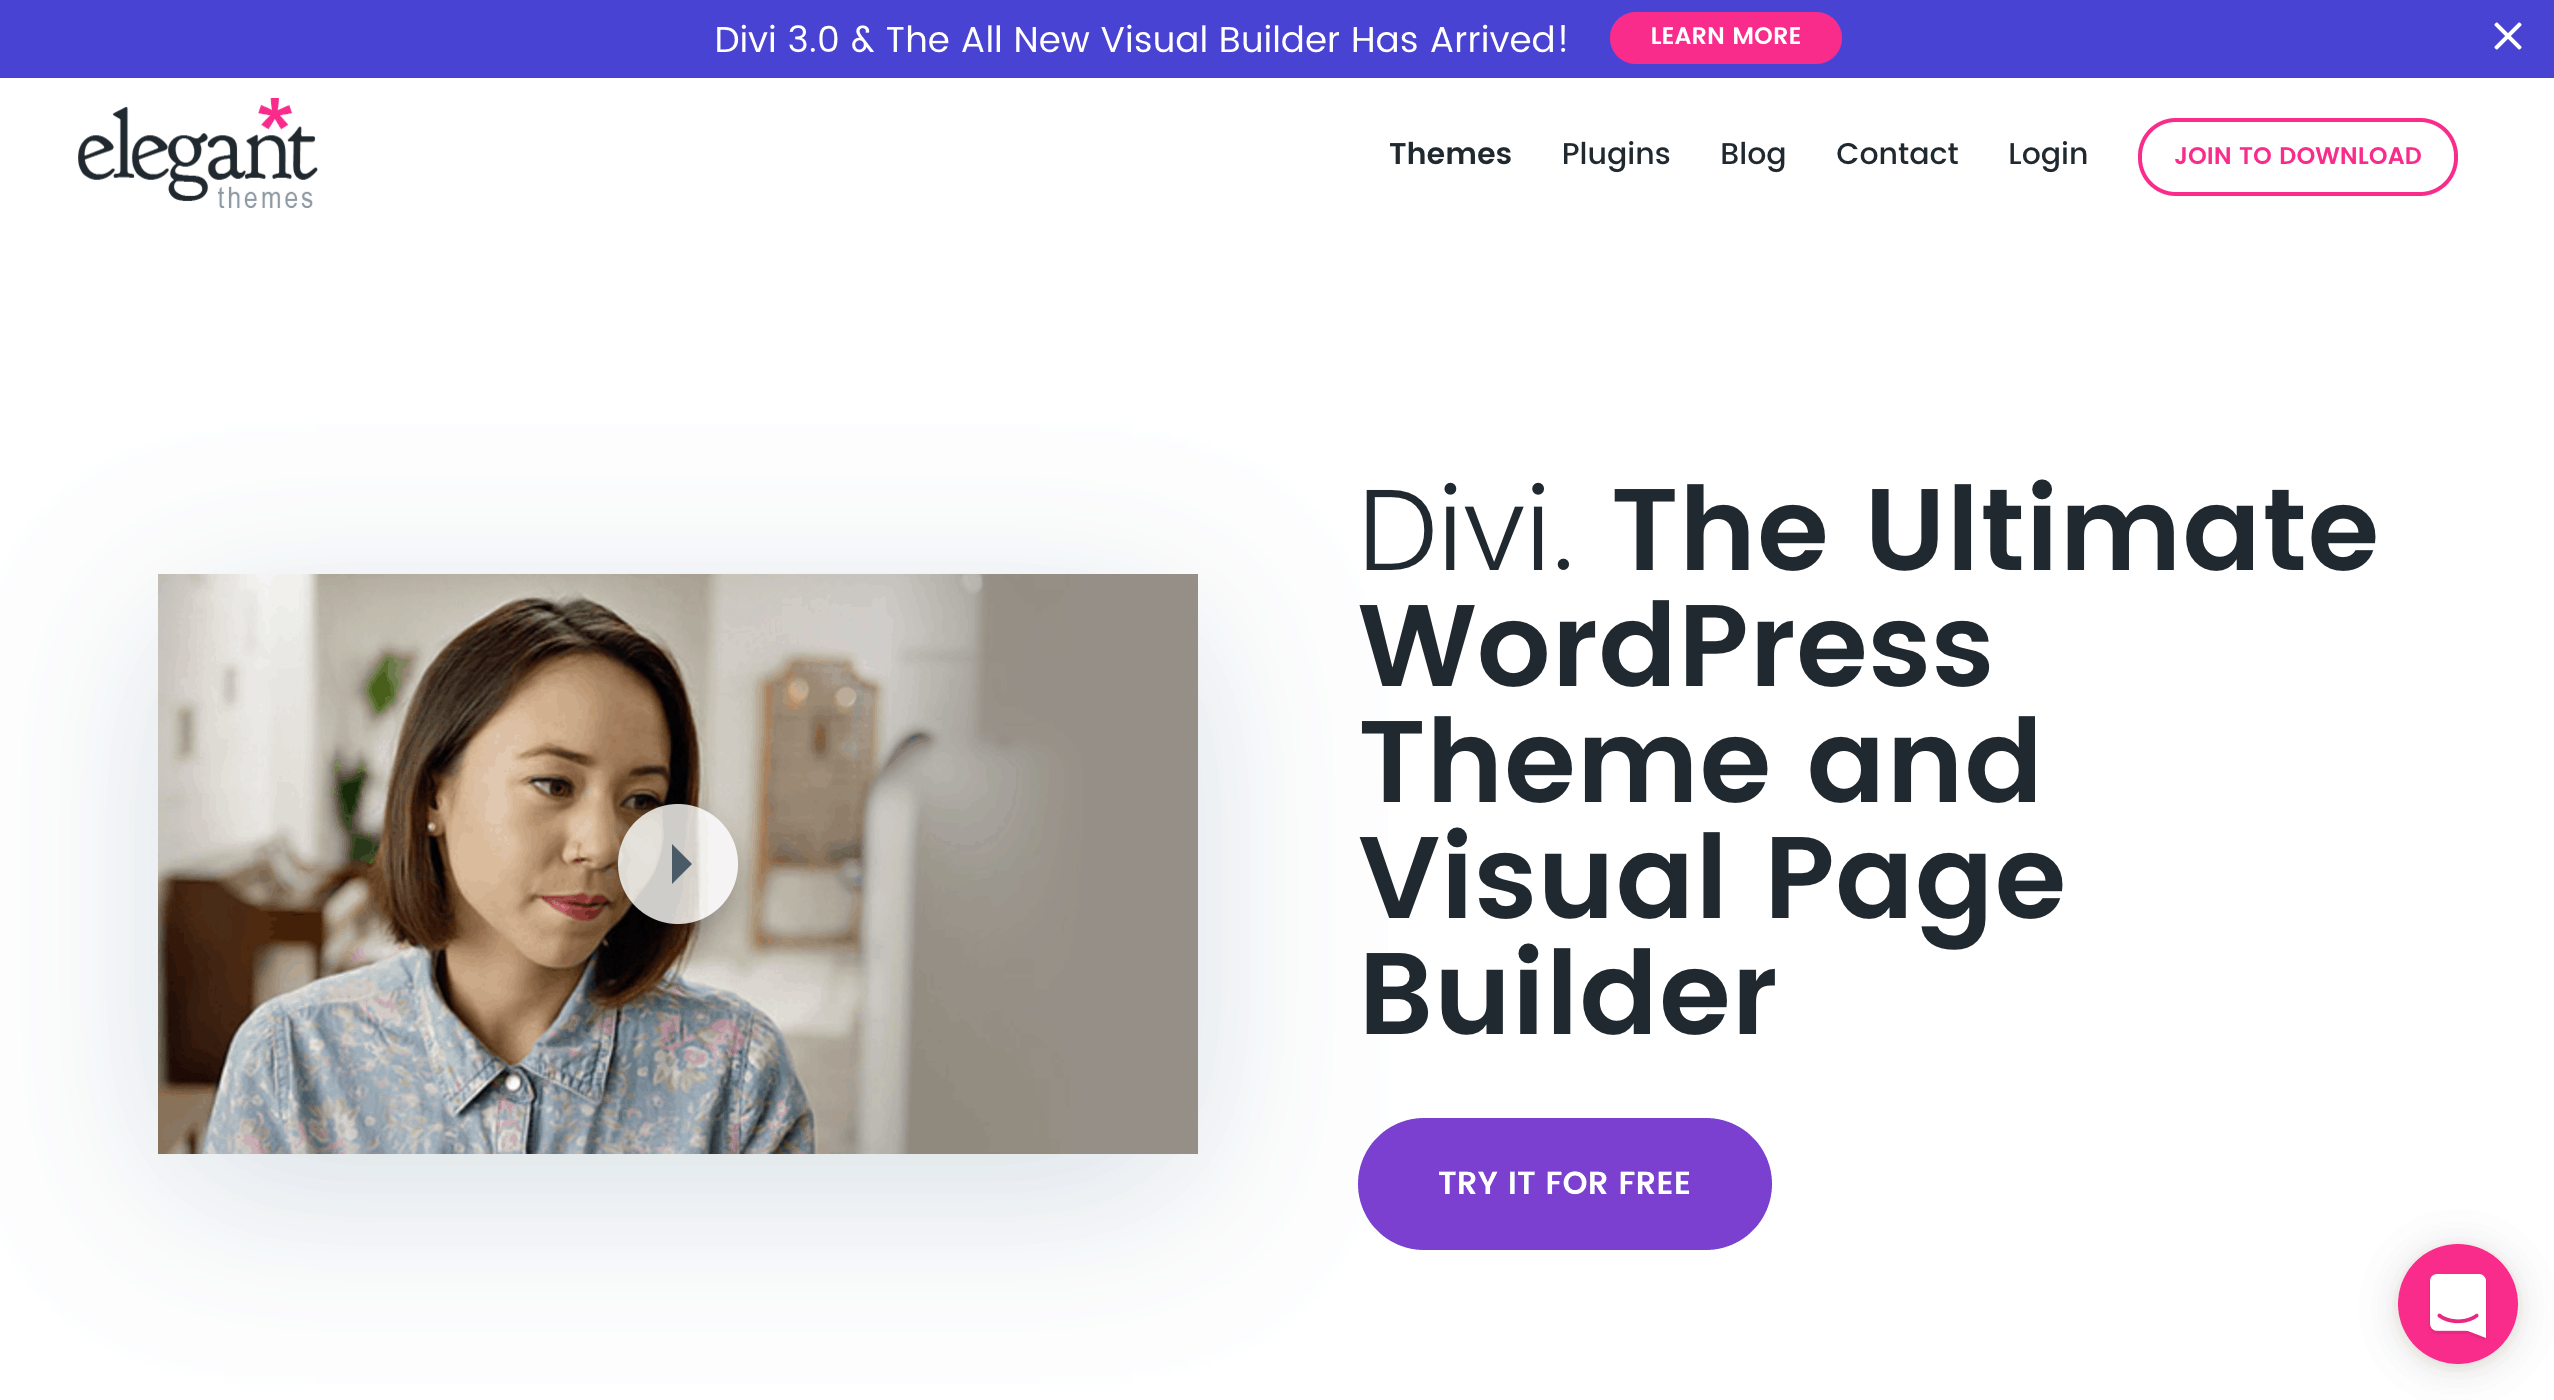 The Divi Theme for WordPress